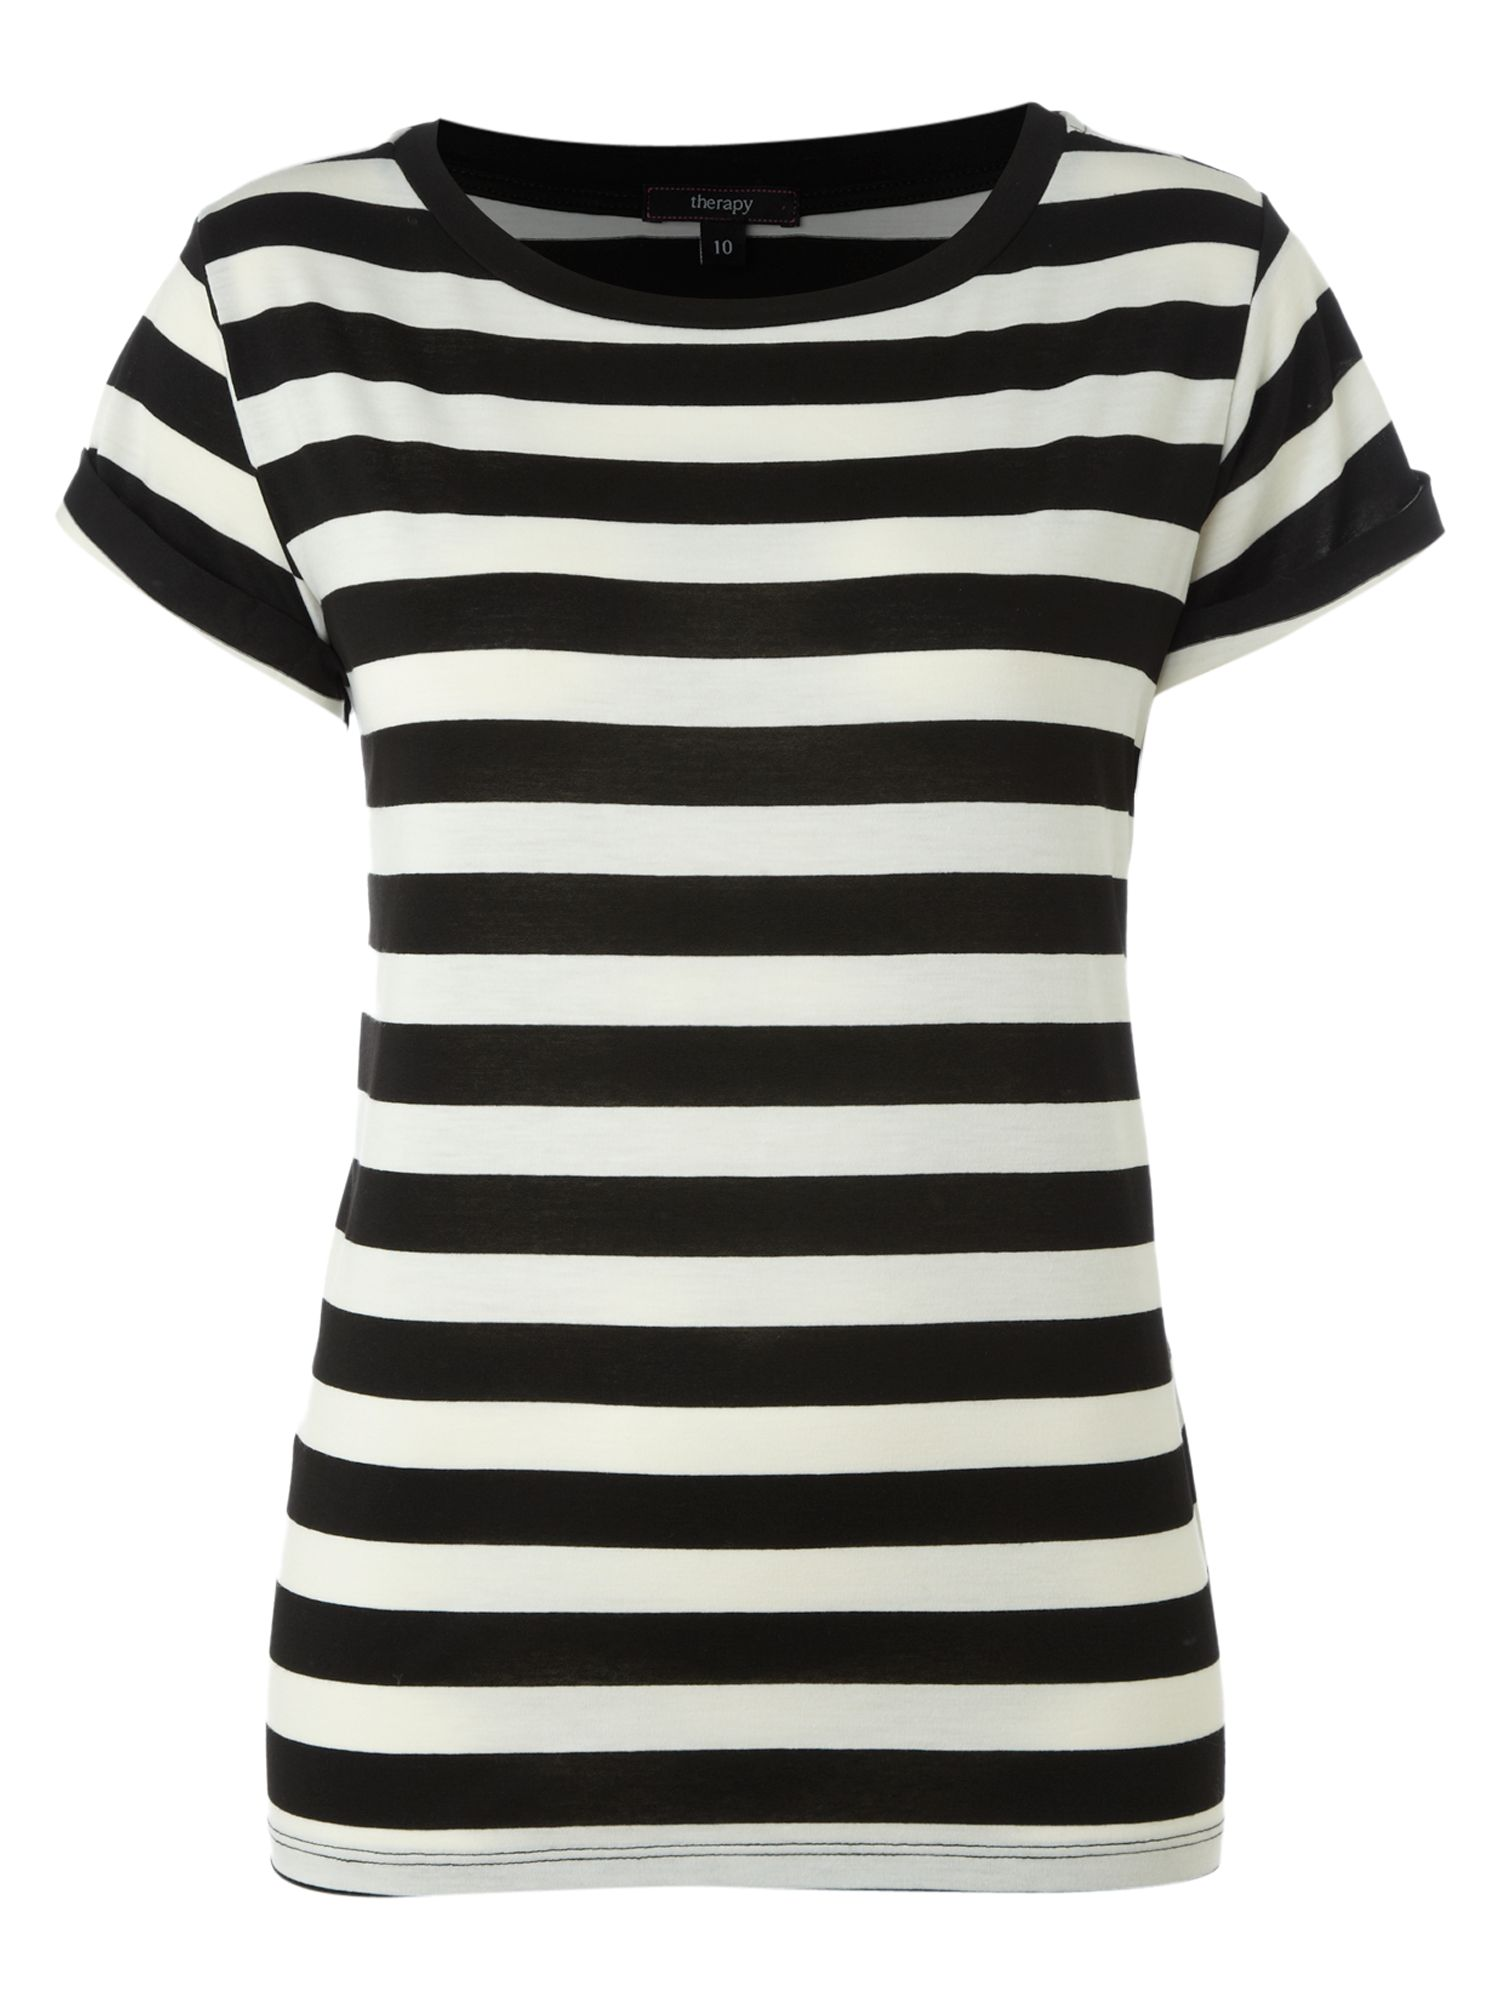 Therapy Womens Therapy Stripe t-shirt, product image